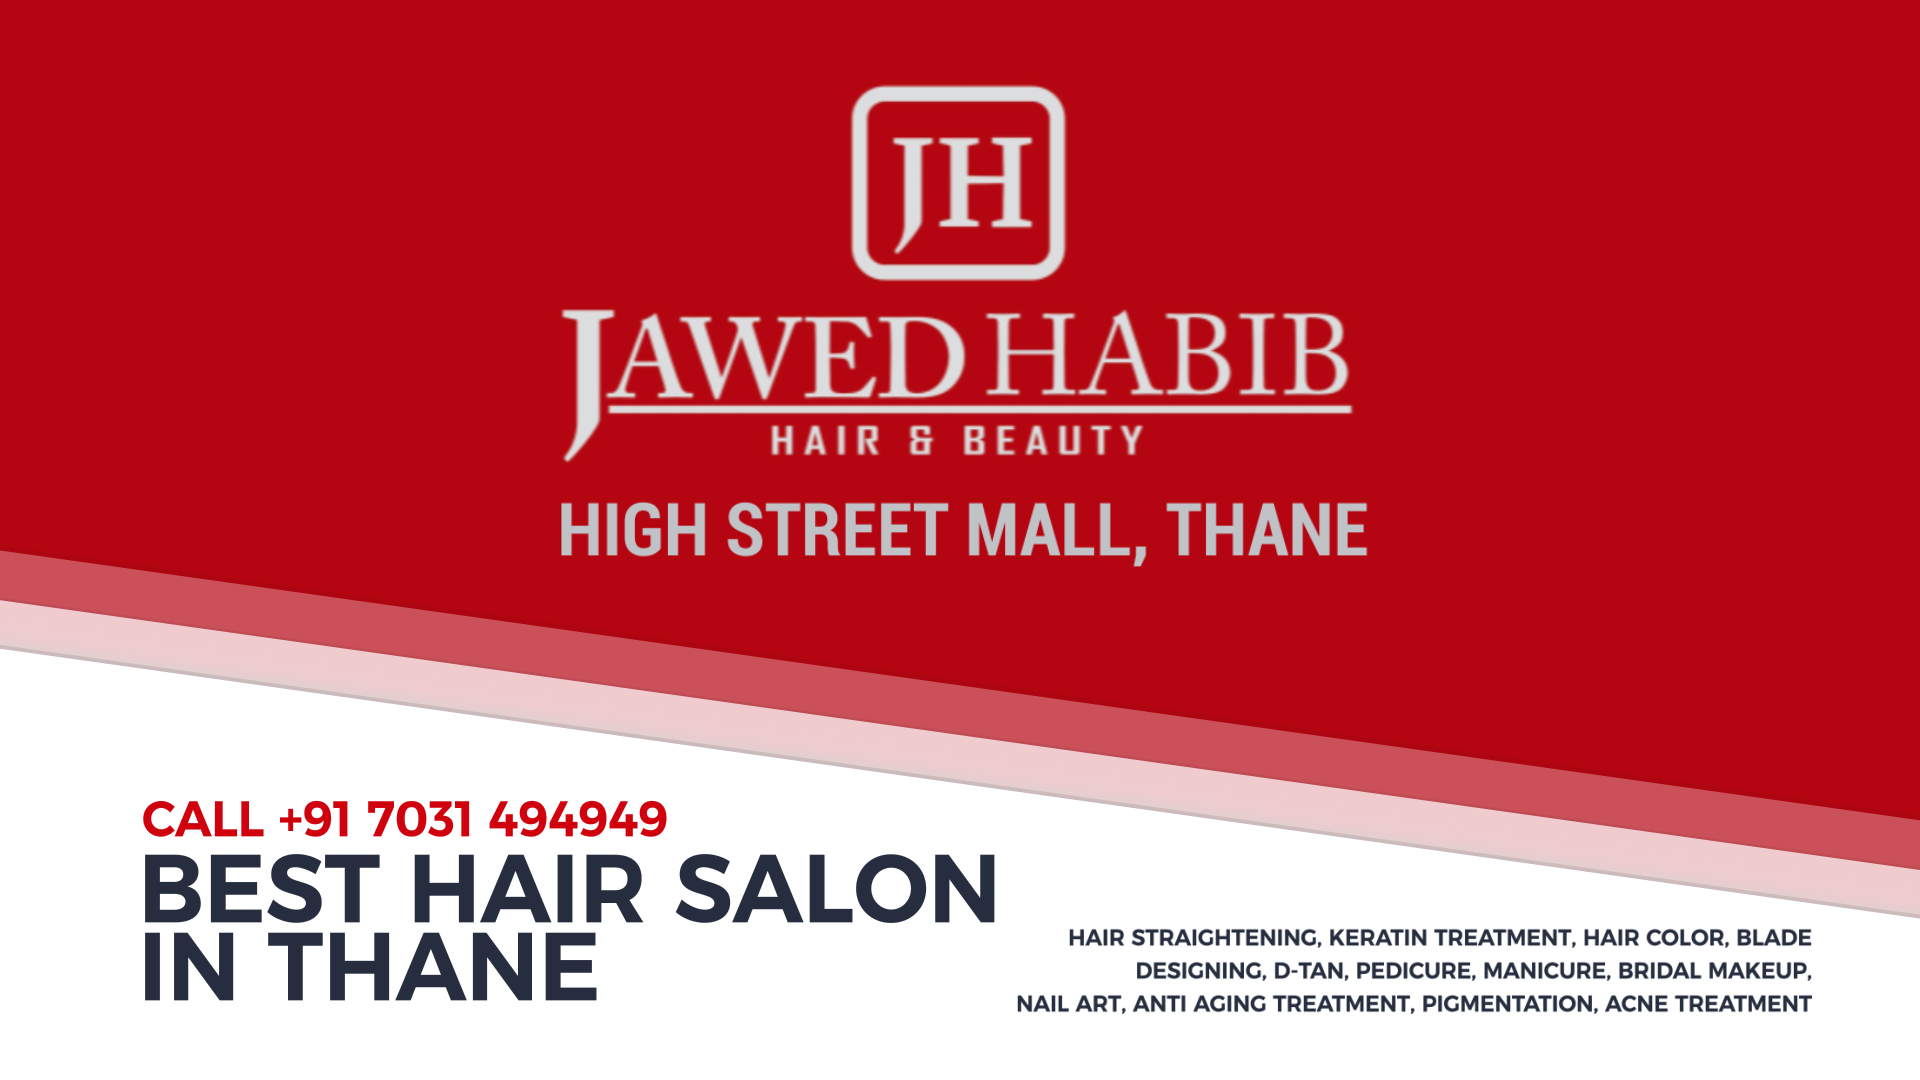 Jawed Habib Hair And Beauty Salon – Thane – High Street Mall